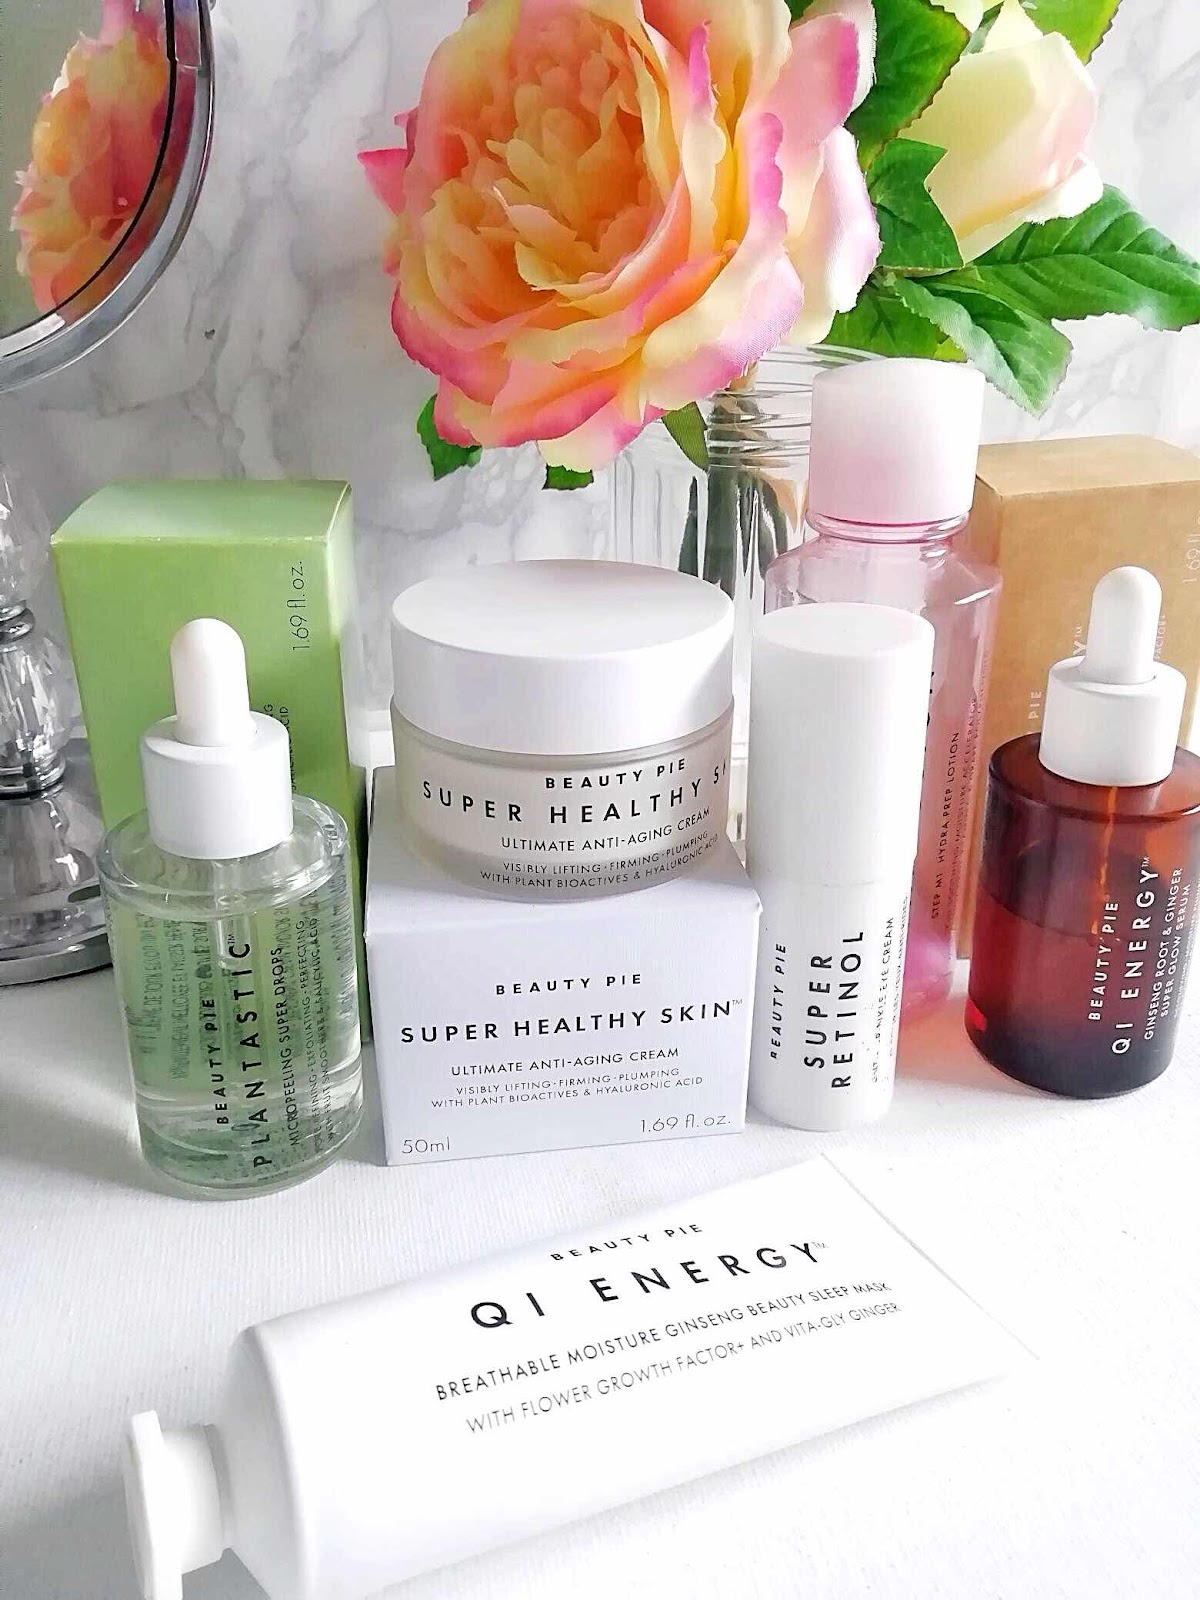 discovering skincare from Beauty Pie